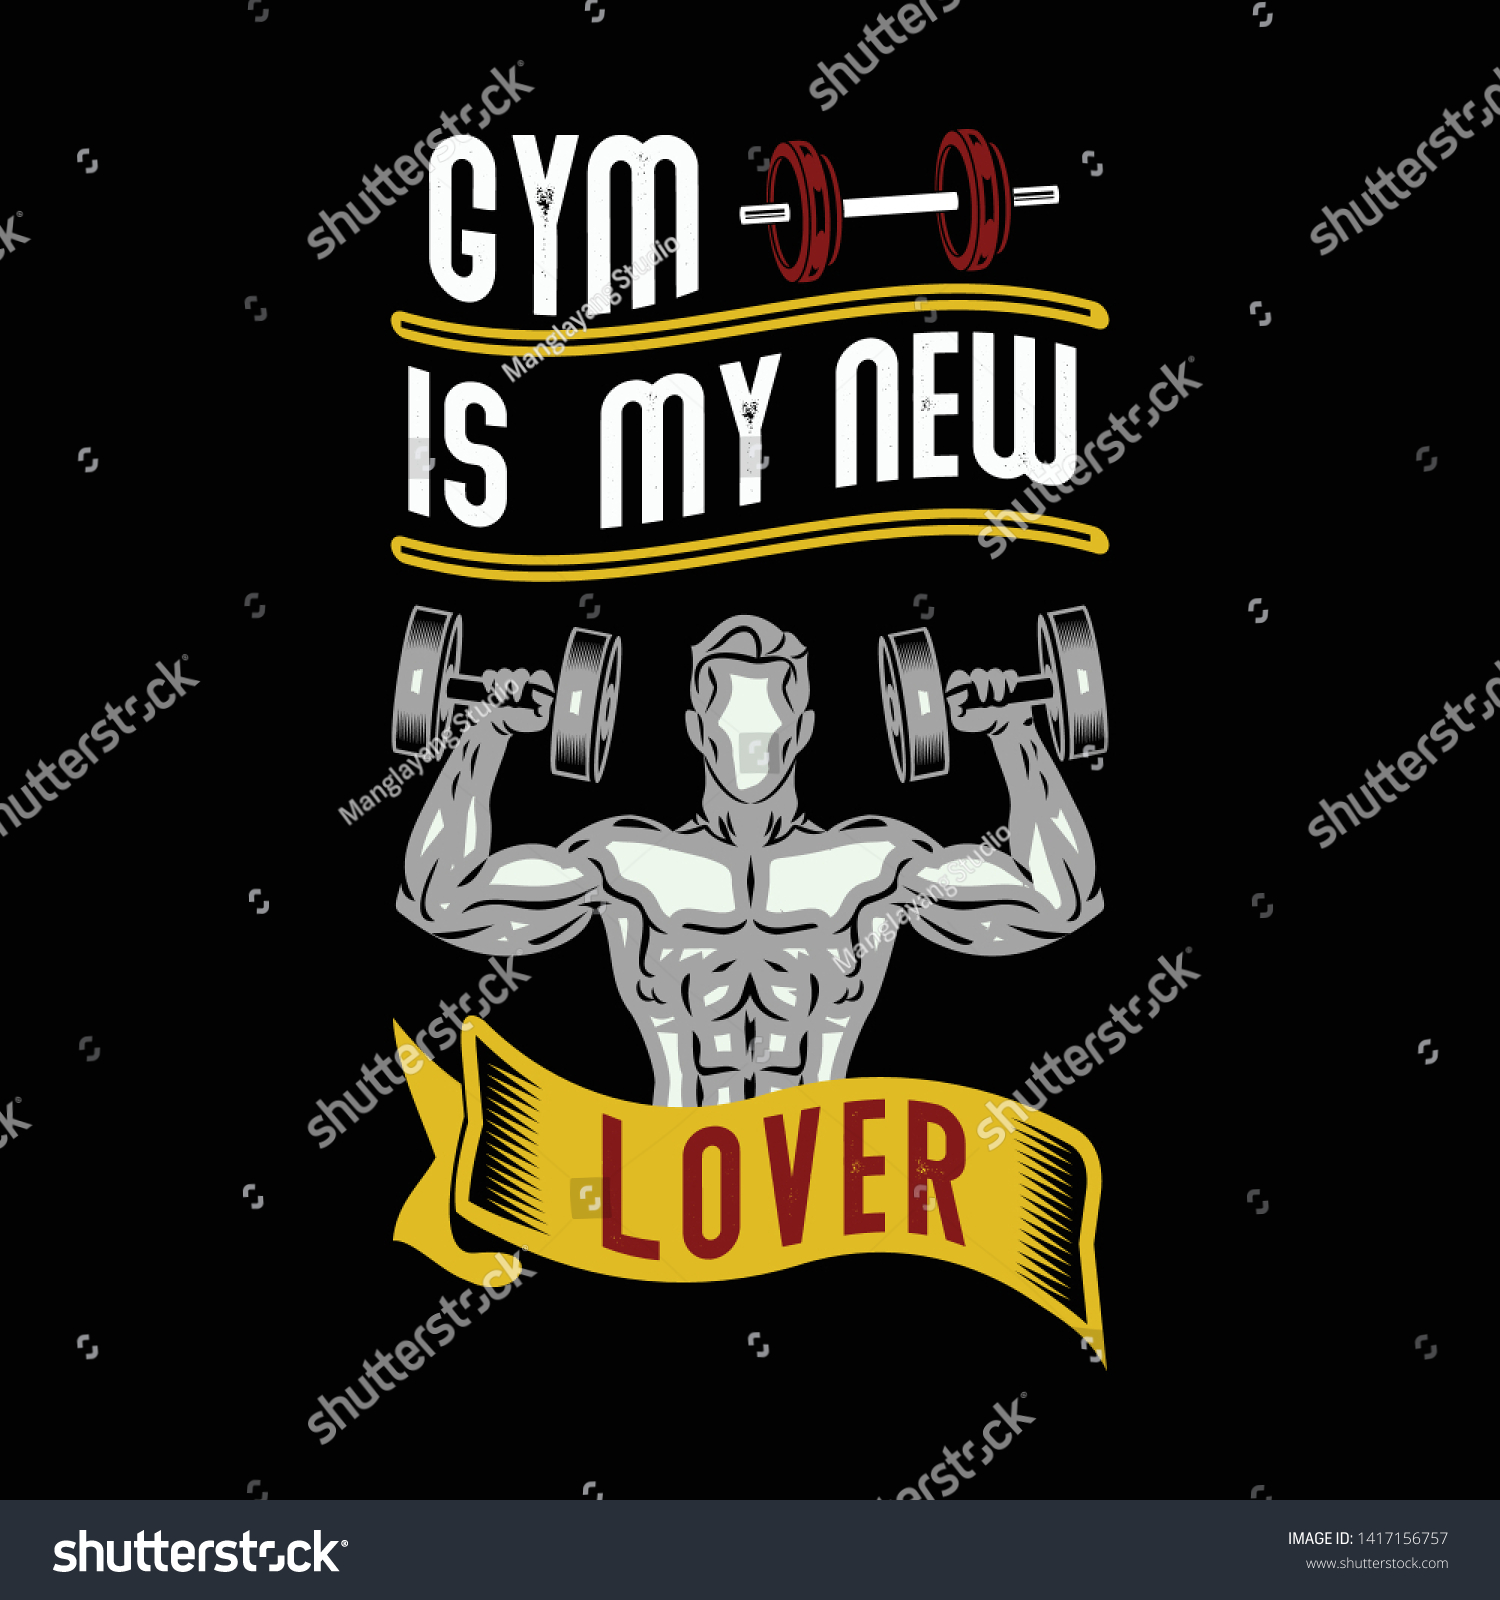 Gym My New Lover Gym Sayings Stock Vector Royalty Free 1417156757